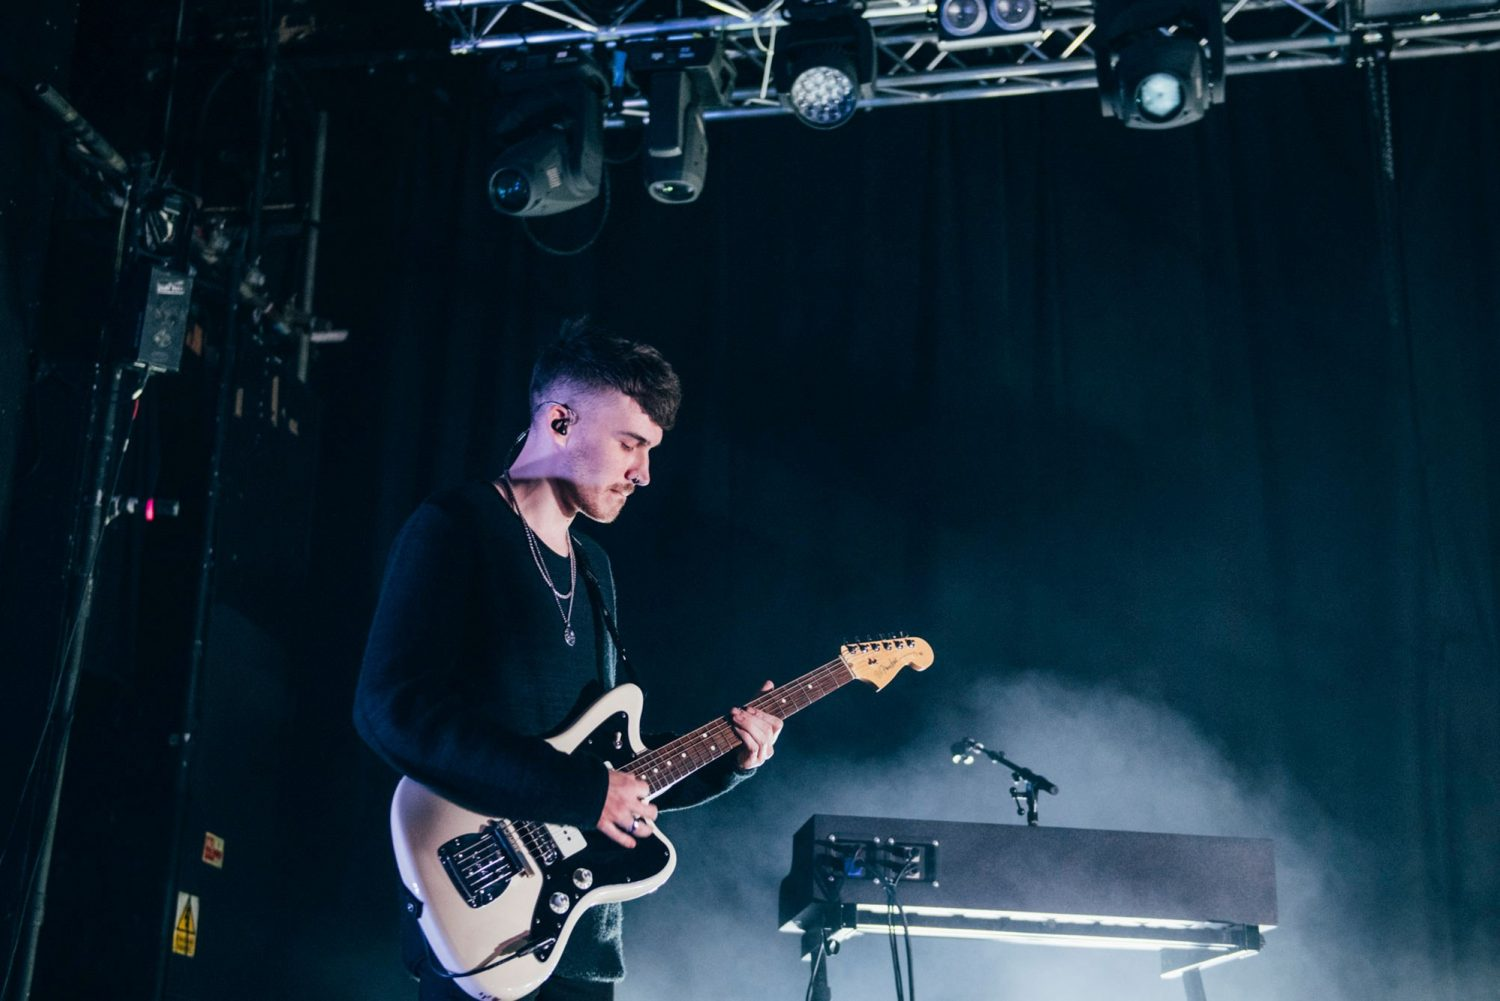 PVRIS return to the UK with a night at London's Electric Brixton